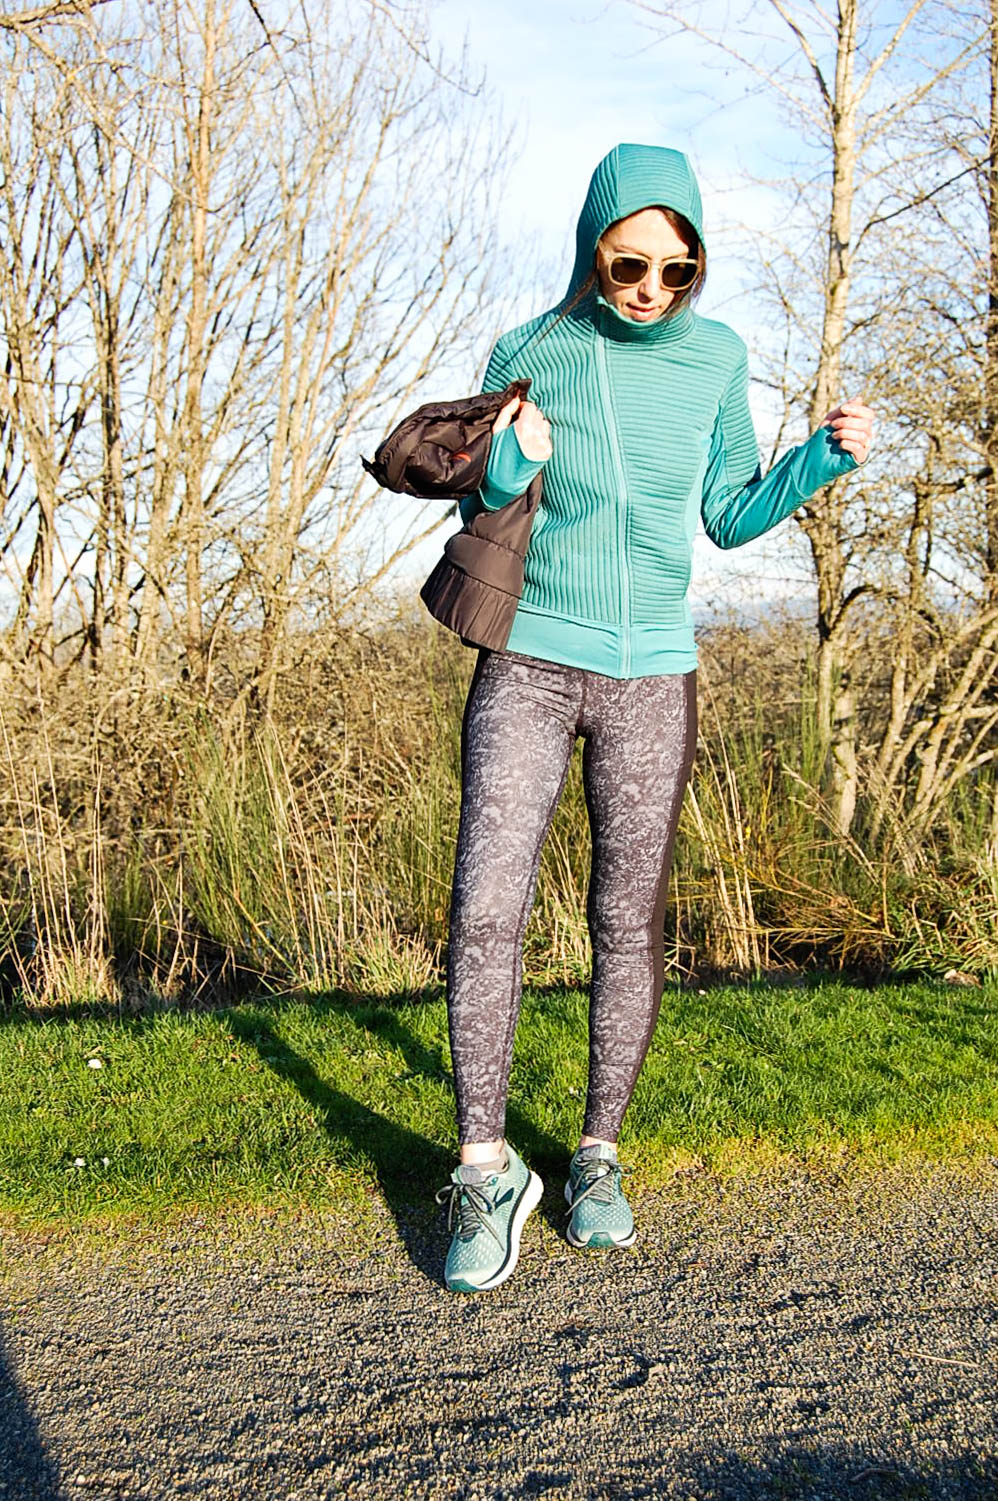 Run Happy: 10 Tips to Start Running Today For Beginners